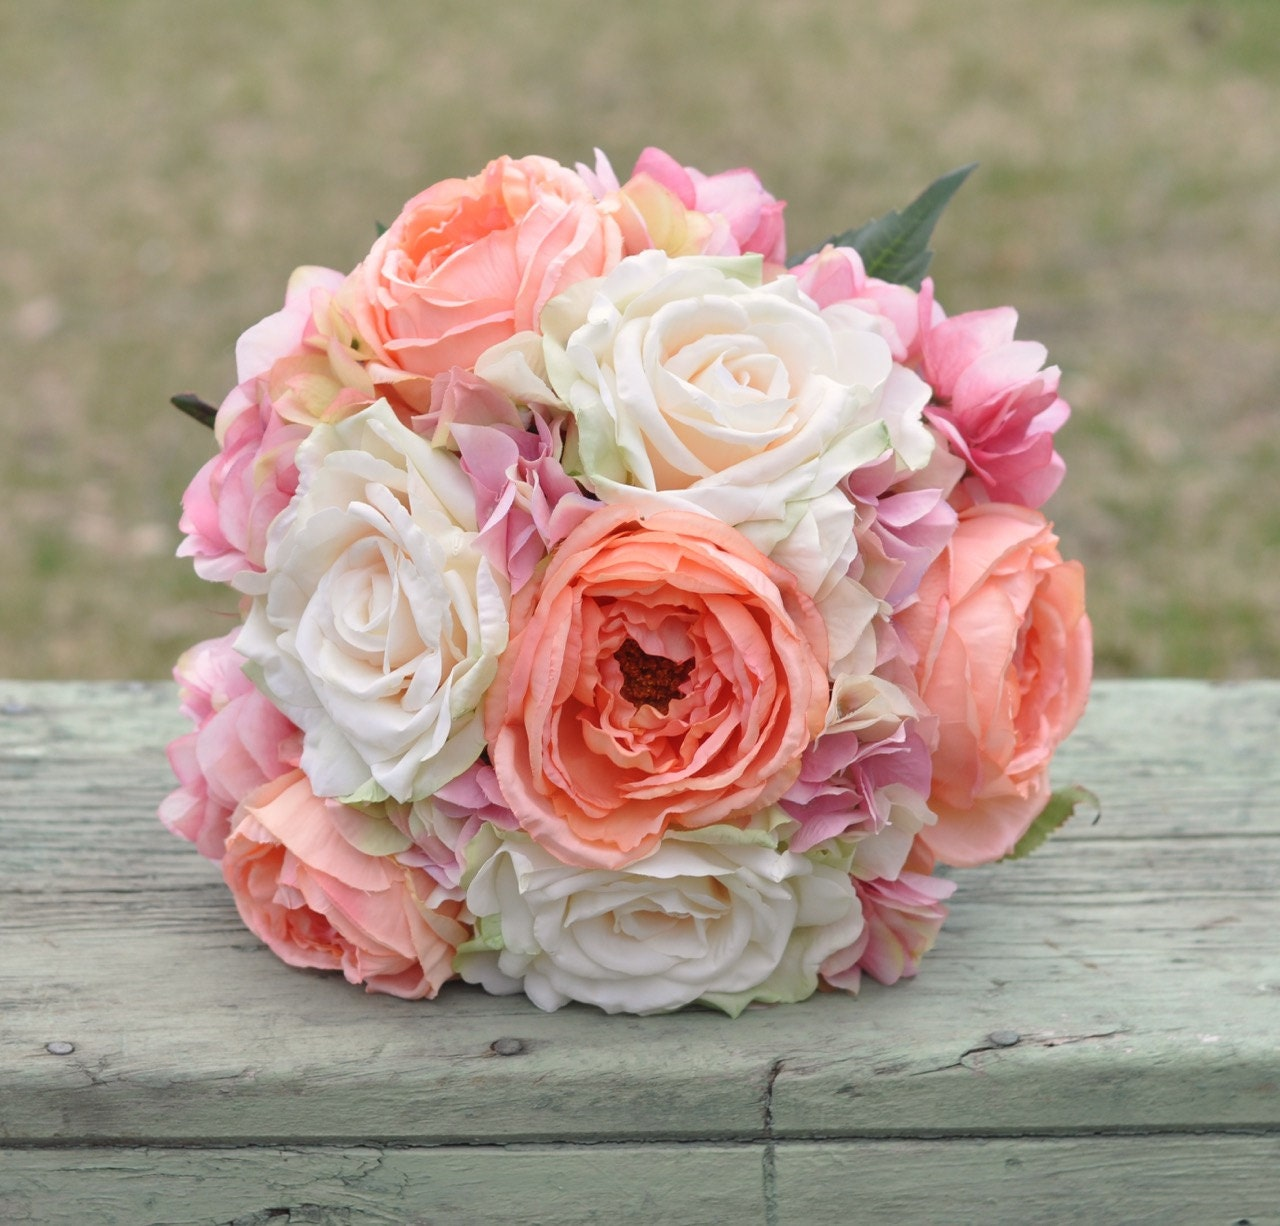 Coral And Pink Wedding Flowers: Coral Rose Blush Rose And Pink Hydrangea Wedding Bouquet Made